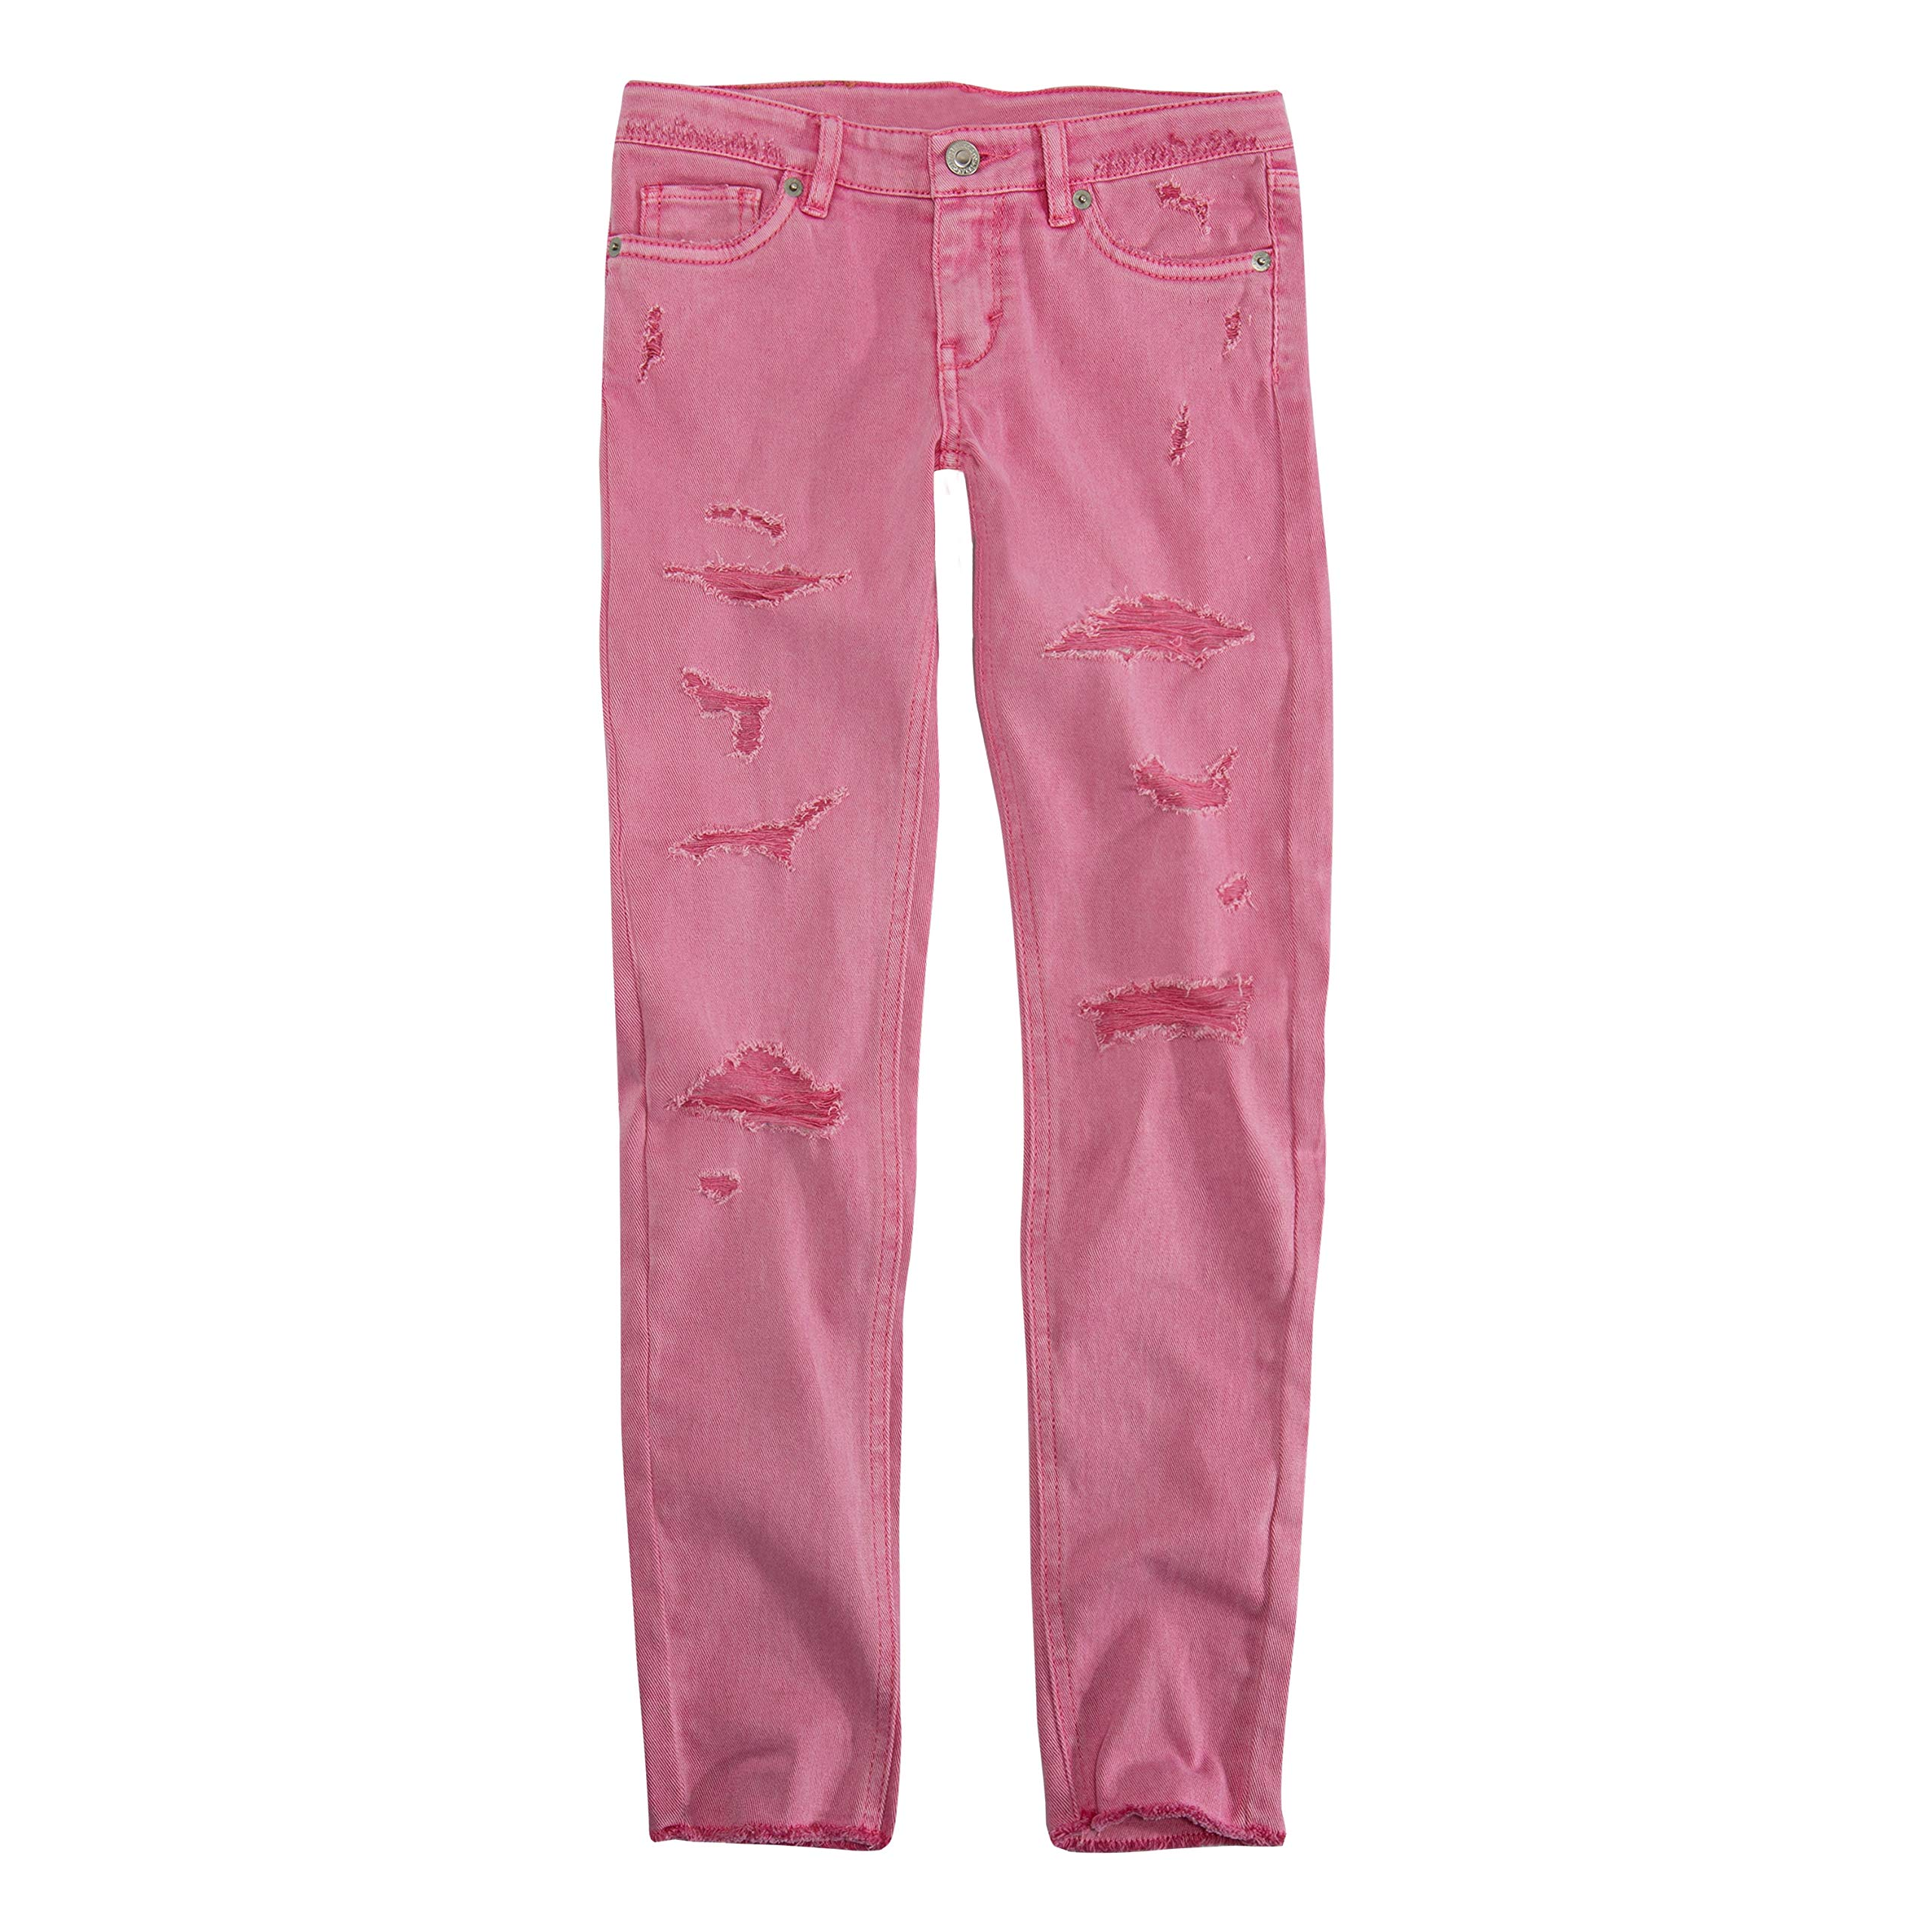 Levi's Girls' Big 710 Super Skinny Fit Color Jeans, Sachet Pink, 8 by Levi's